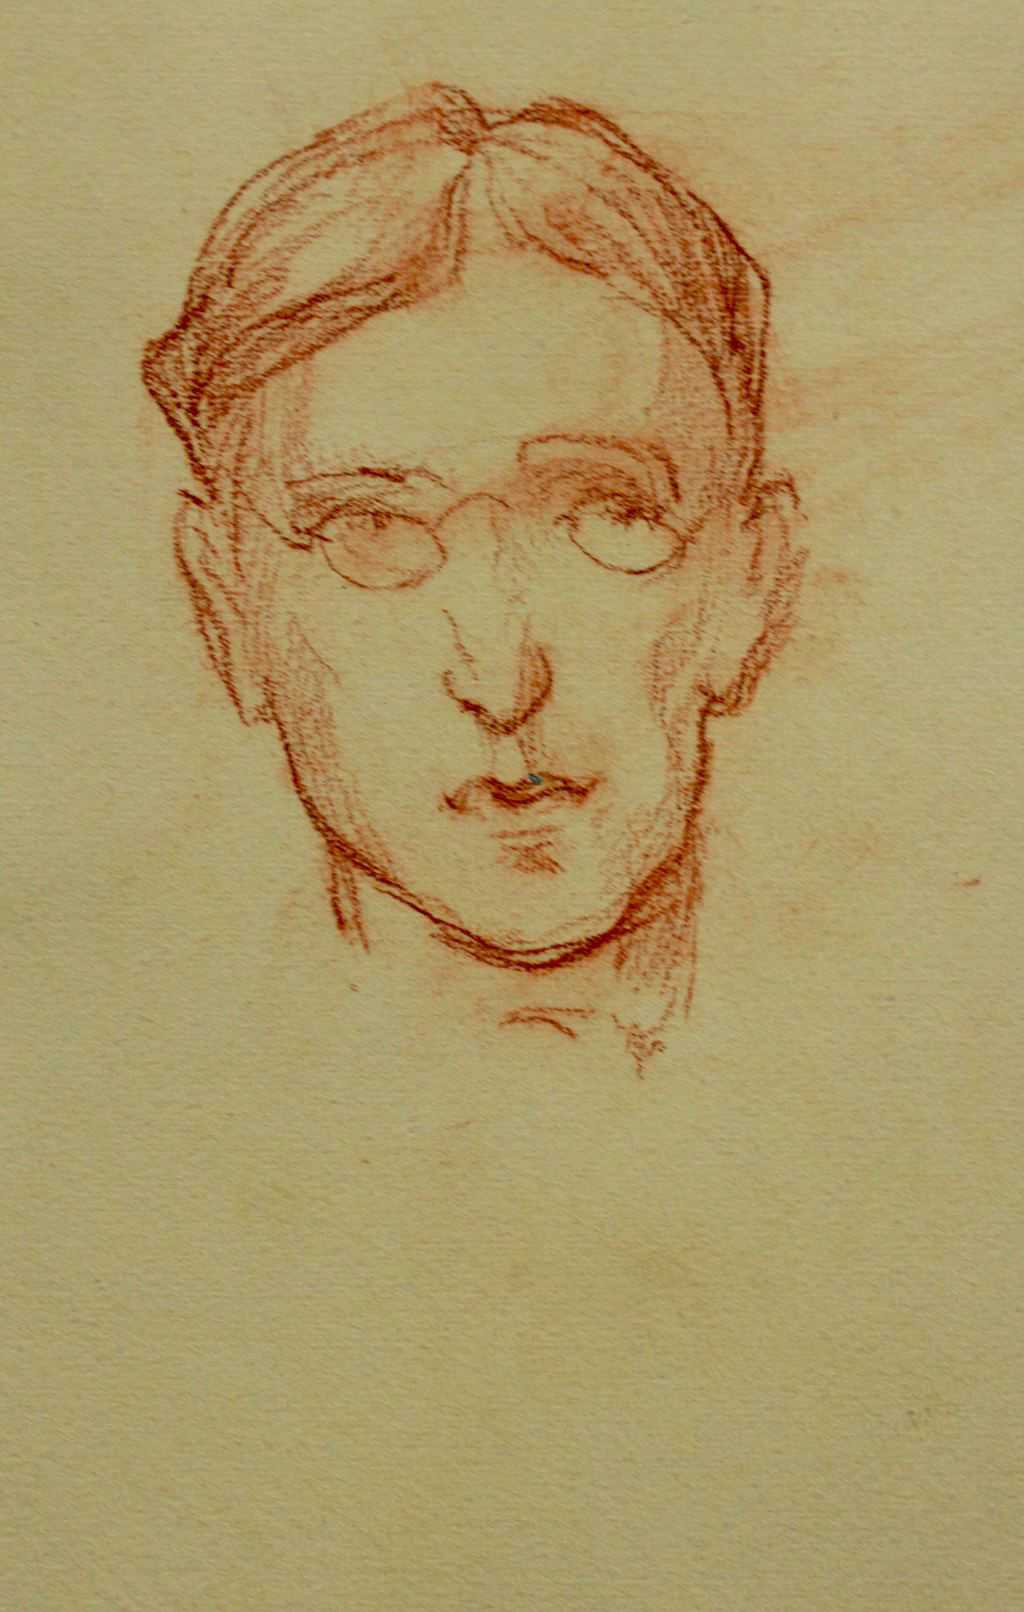 Sketch of unnamed person